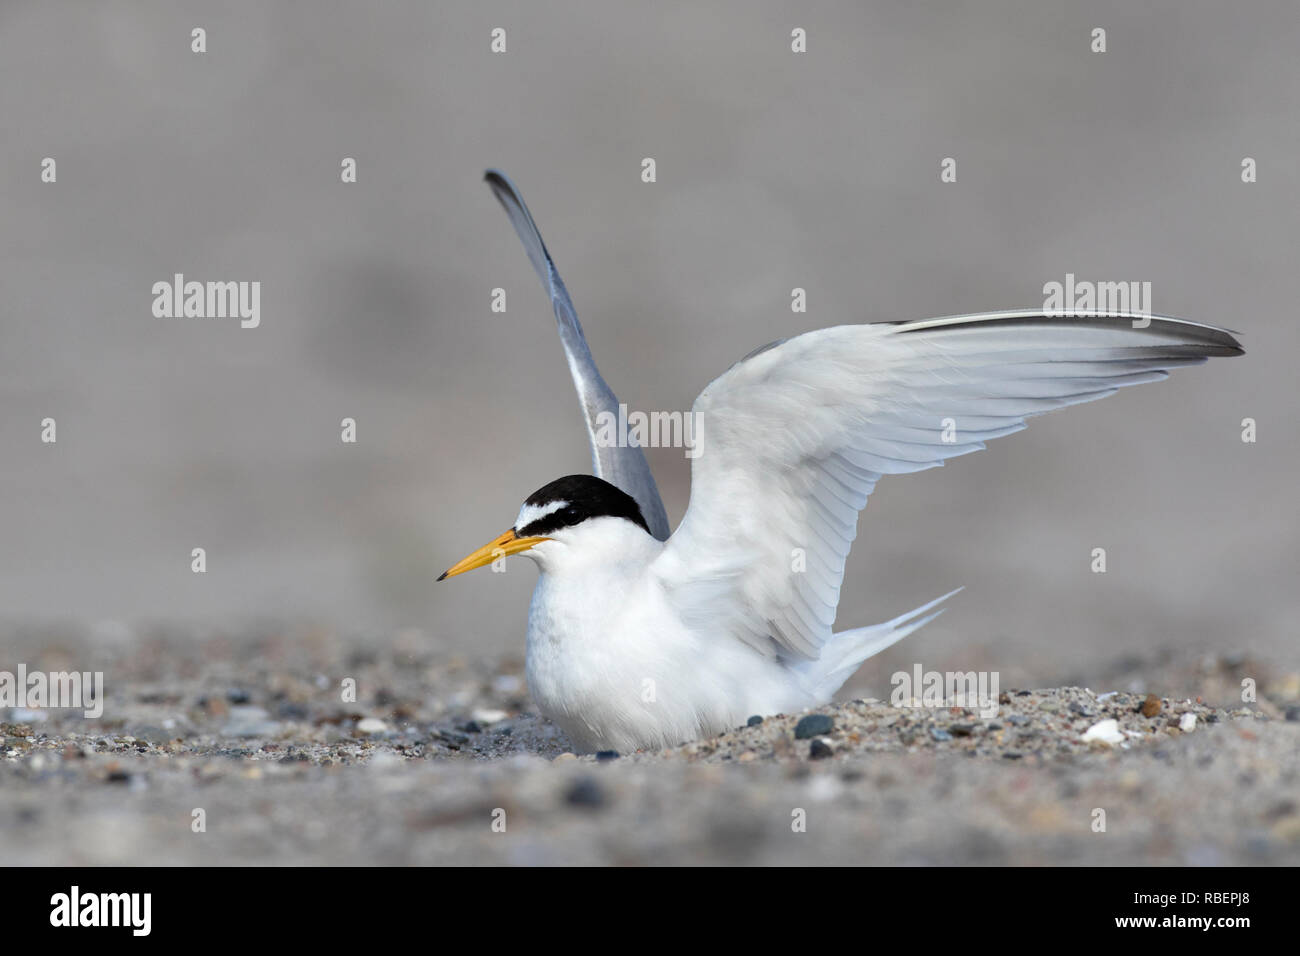 Little tern (Sternula albifrons / Sterna albifrons) spreading wings on the beach in late spring / summer - Stock Image